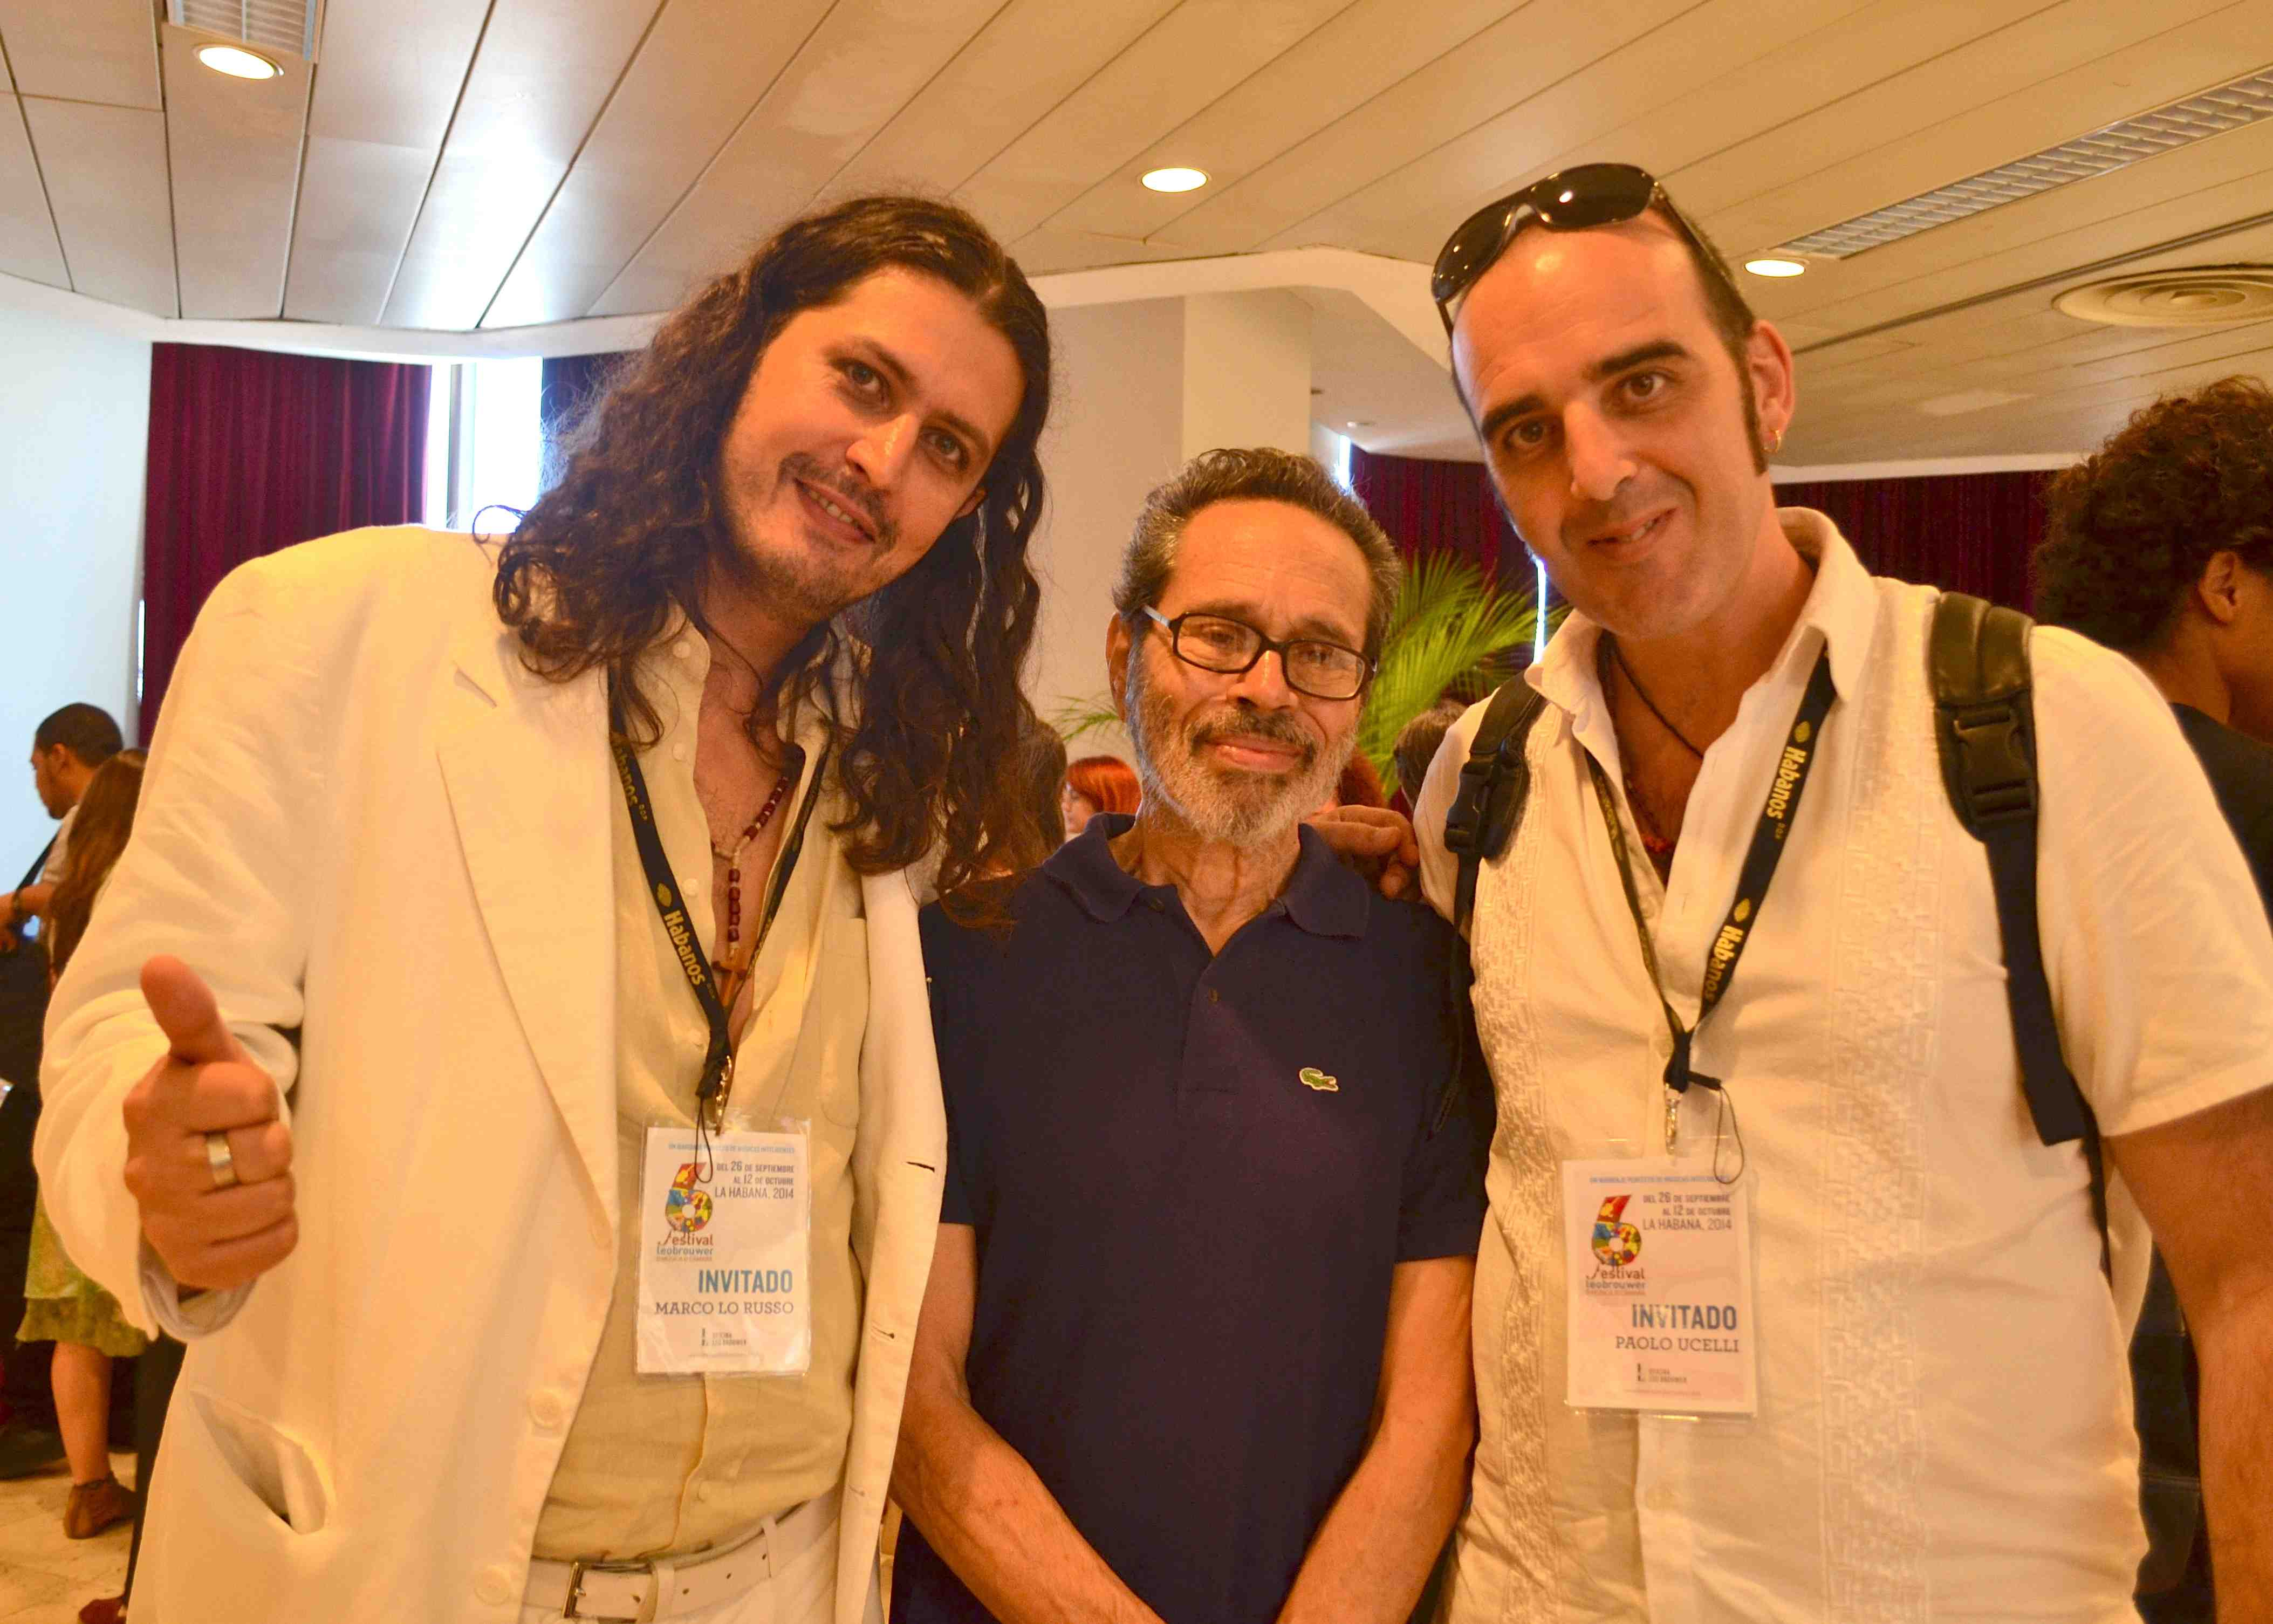 Marco Lo Russo with Leo Brouwer and Paolo Uccelli